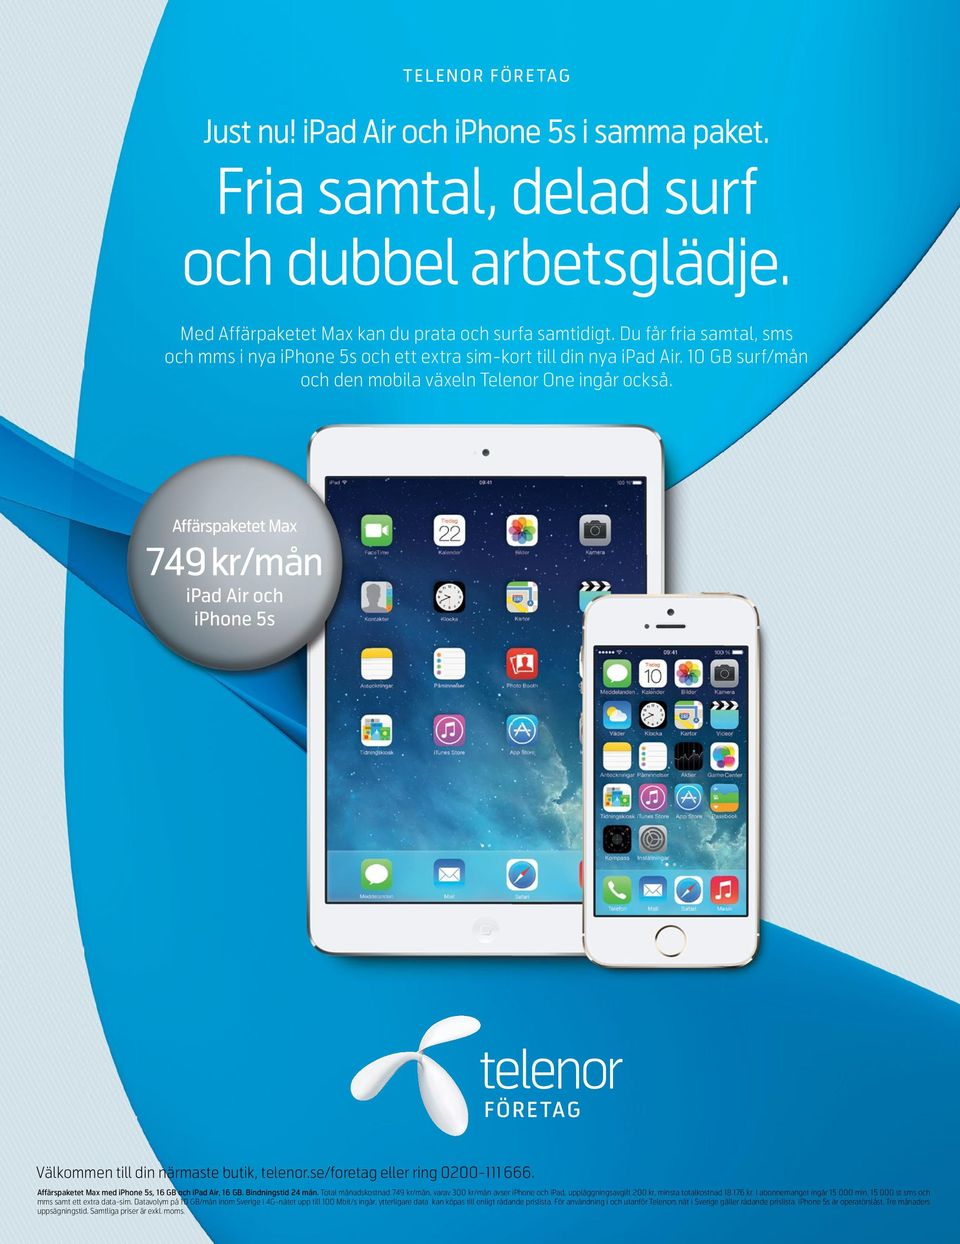 Affärspaketet Max 749 kr/mån ipad Air och iphone 5s Välkommen till din närmaste butik, telenor.se/foretag eller ring 0200-111 666. Affärspaketet Max med iphone 5s, 16 GB och ipad Air, 16 GB.